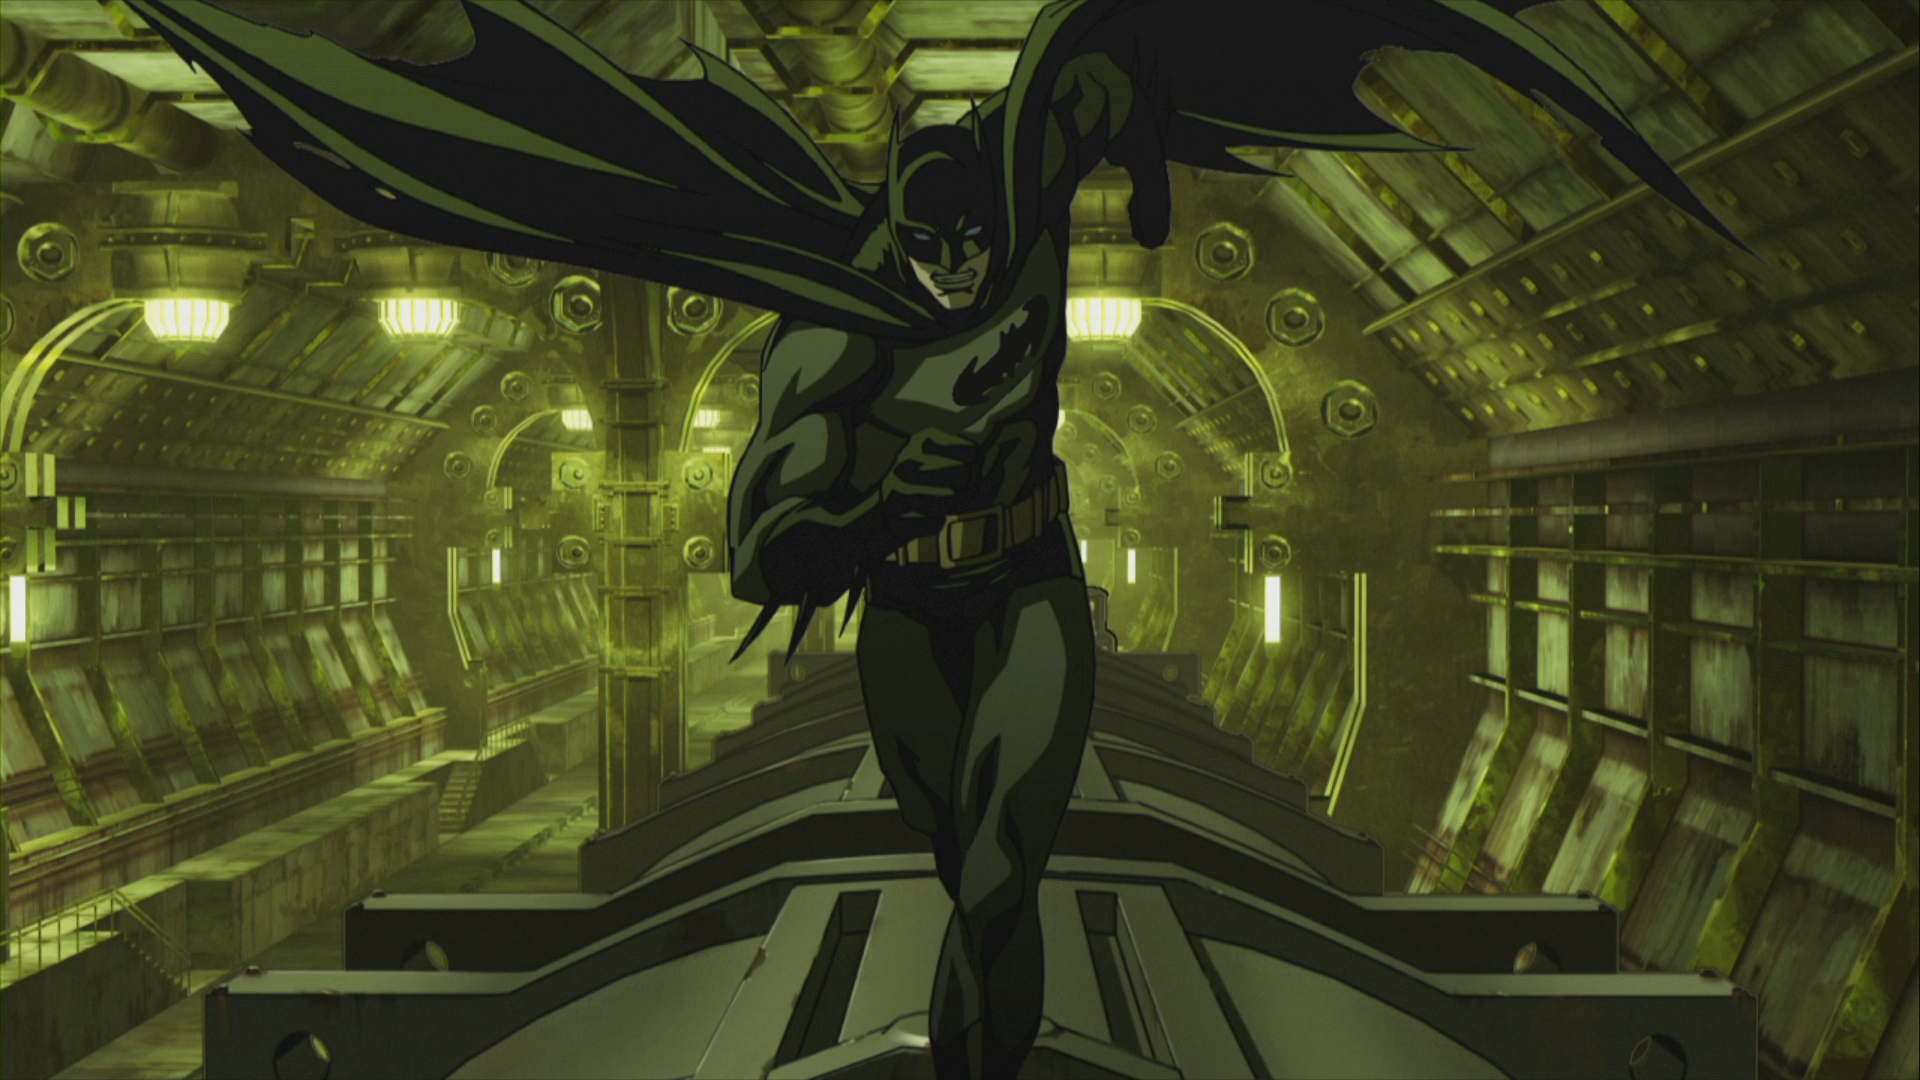 1920x1080 > Batman: Gotham Knight Wallpapers